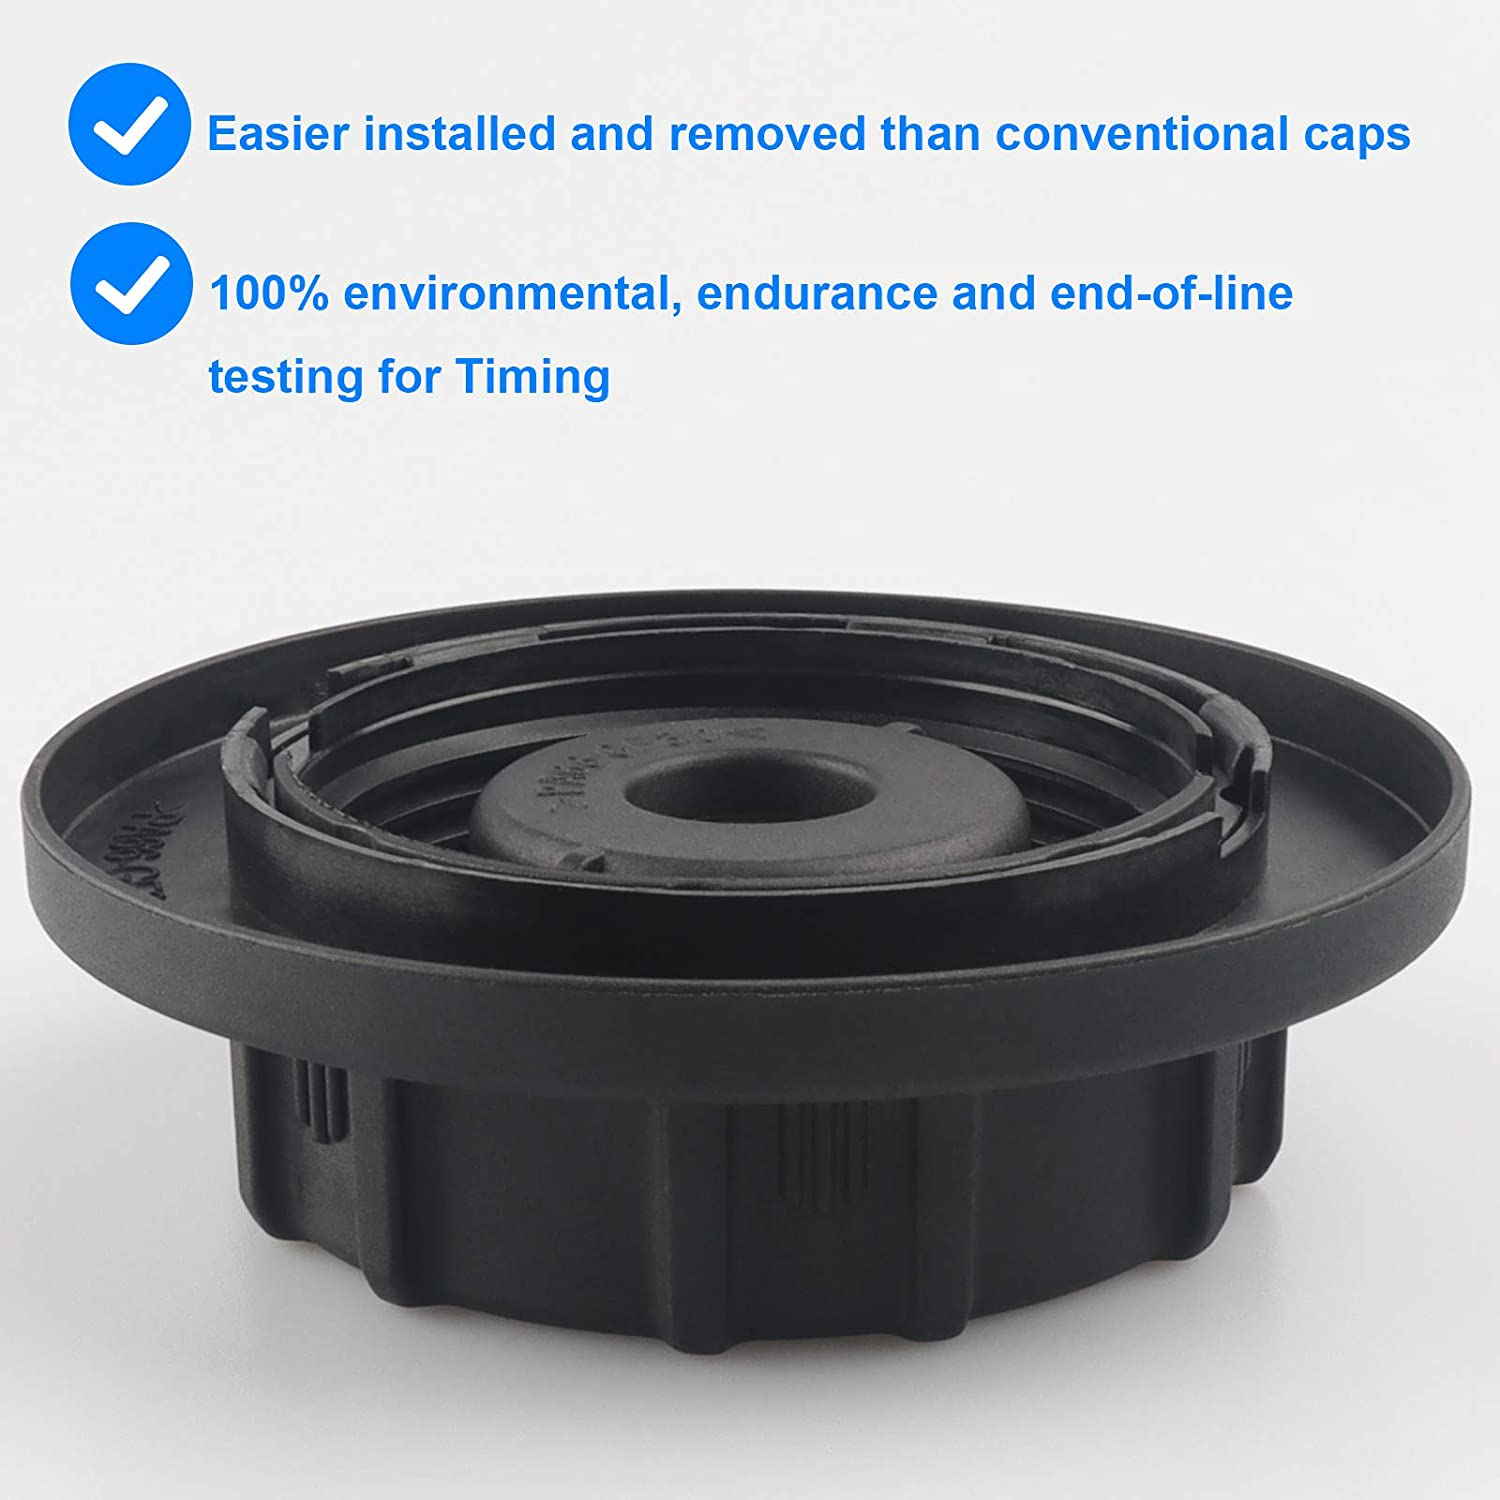 9C3Z8101B Compatible with Ford 6.0 7.3 Powerstroke Coolant Reservoir Cap Replace RS-527 9C3Z-8101-B RS527 Lincoln Mercury Radiator Pressure Cap Explorer F150 F250 F350 Mustang Taurus More